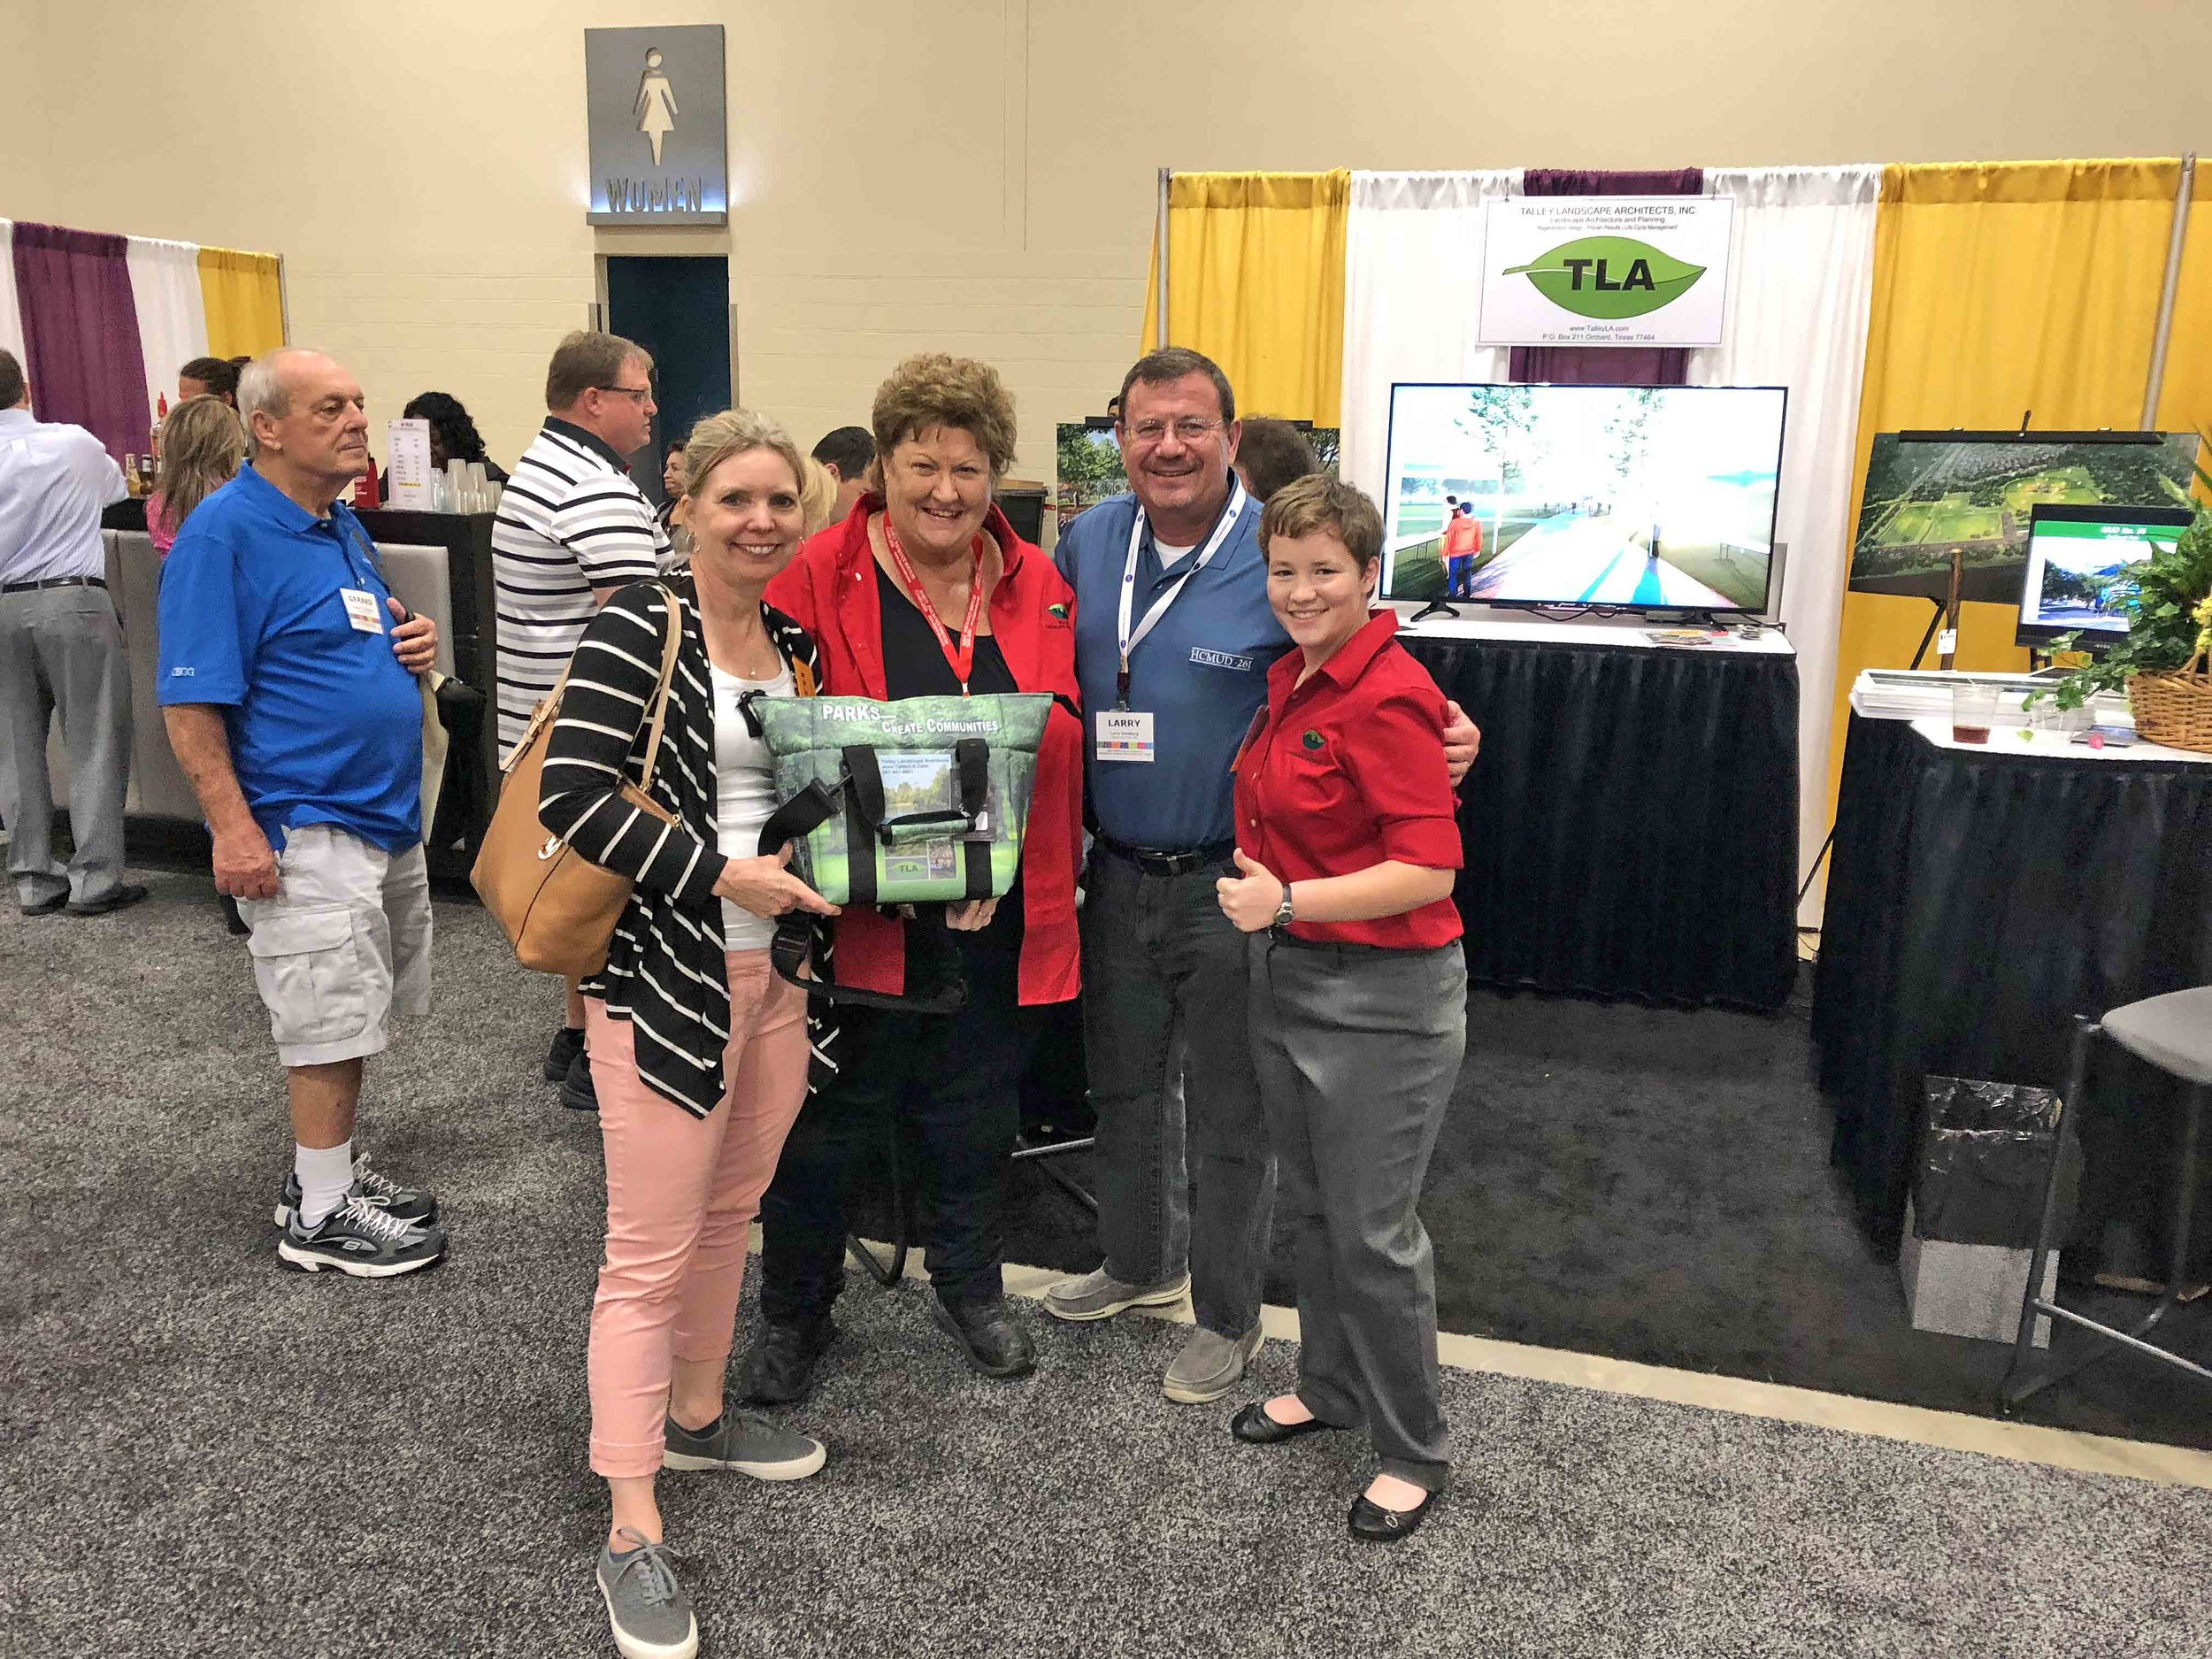 - Talley Landscape Architects, Inc. had a successful 2018 Association of Water Board Directors Conference in San Antonio, Texas. Glad to see many familiar faces and several lucky winners went home with beautiful soft sided coolers.